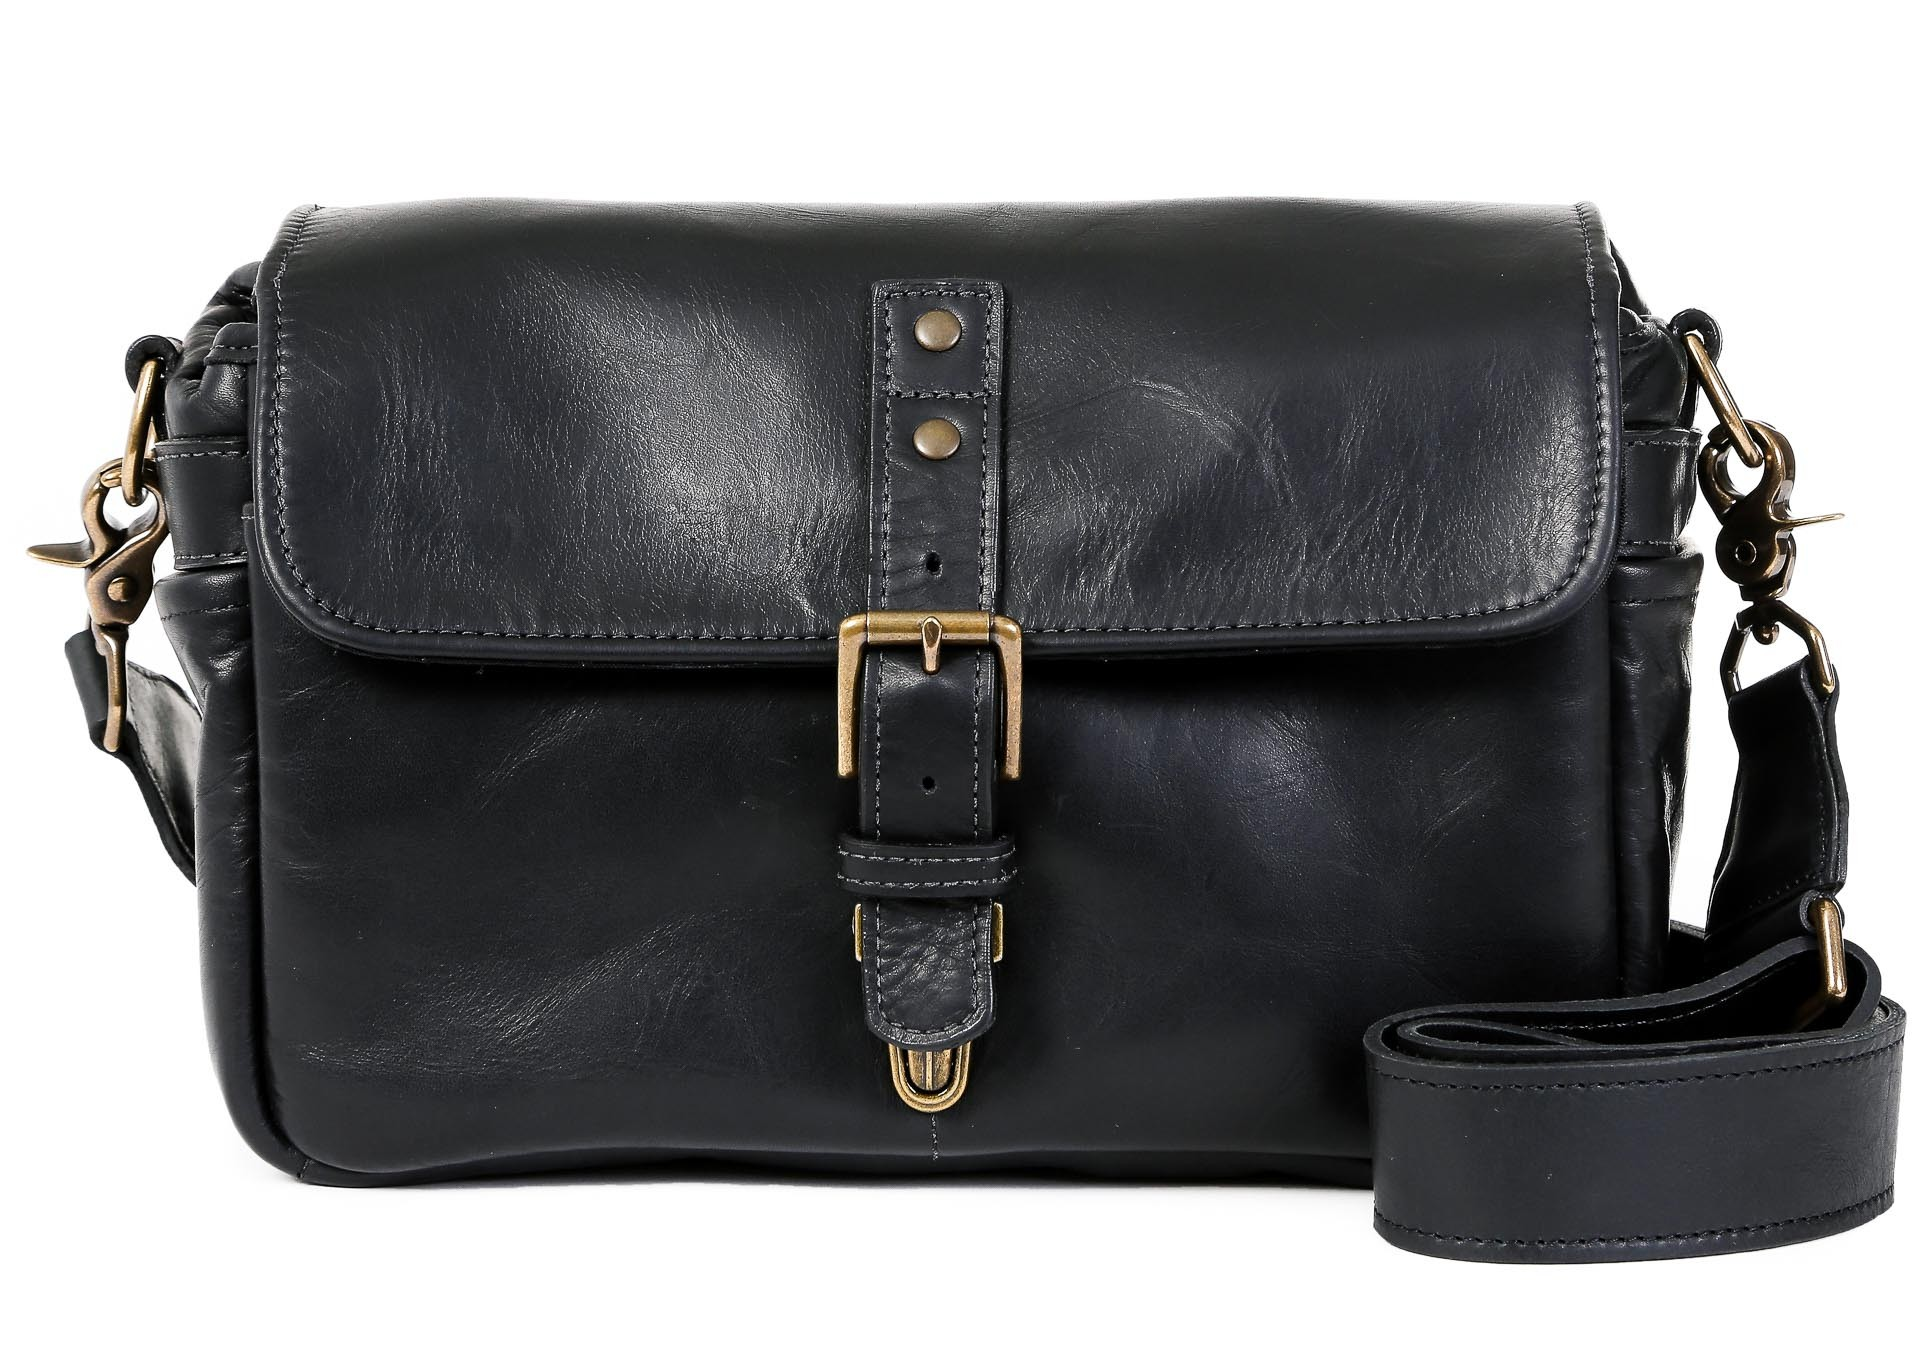 7e1a0f8b0de The Leather Bowery » Ona Bags